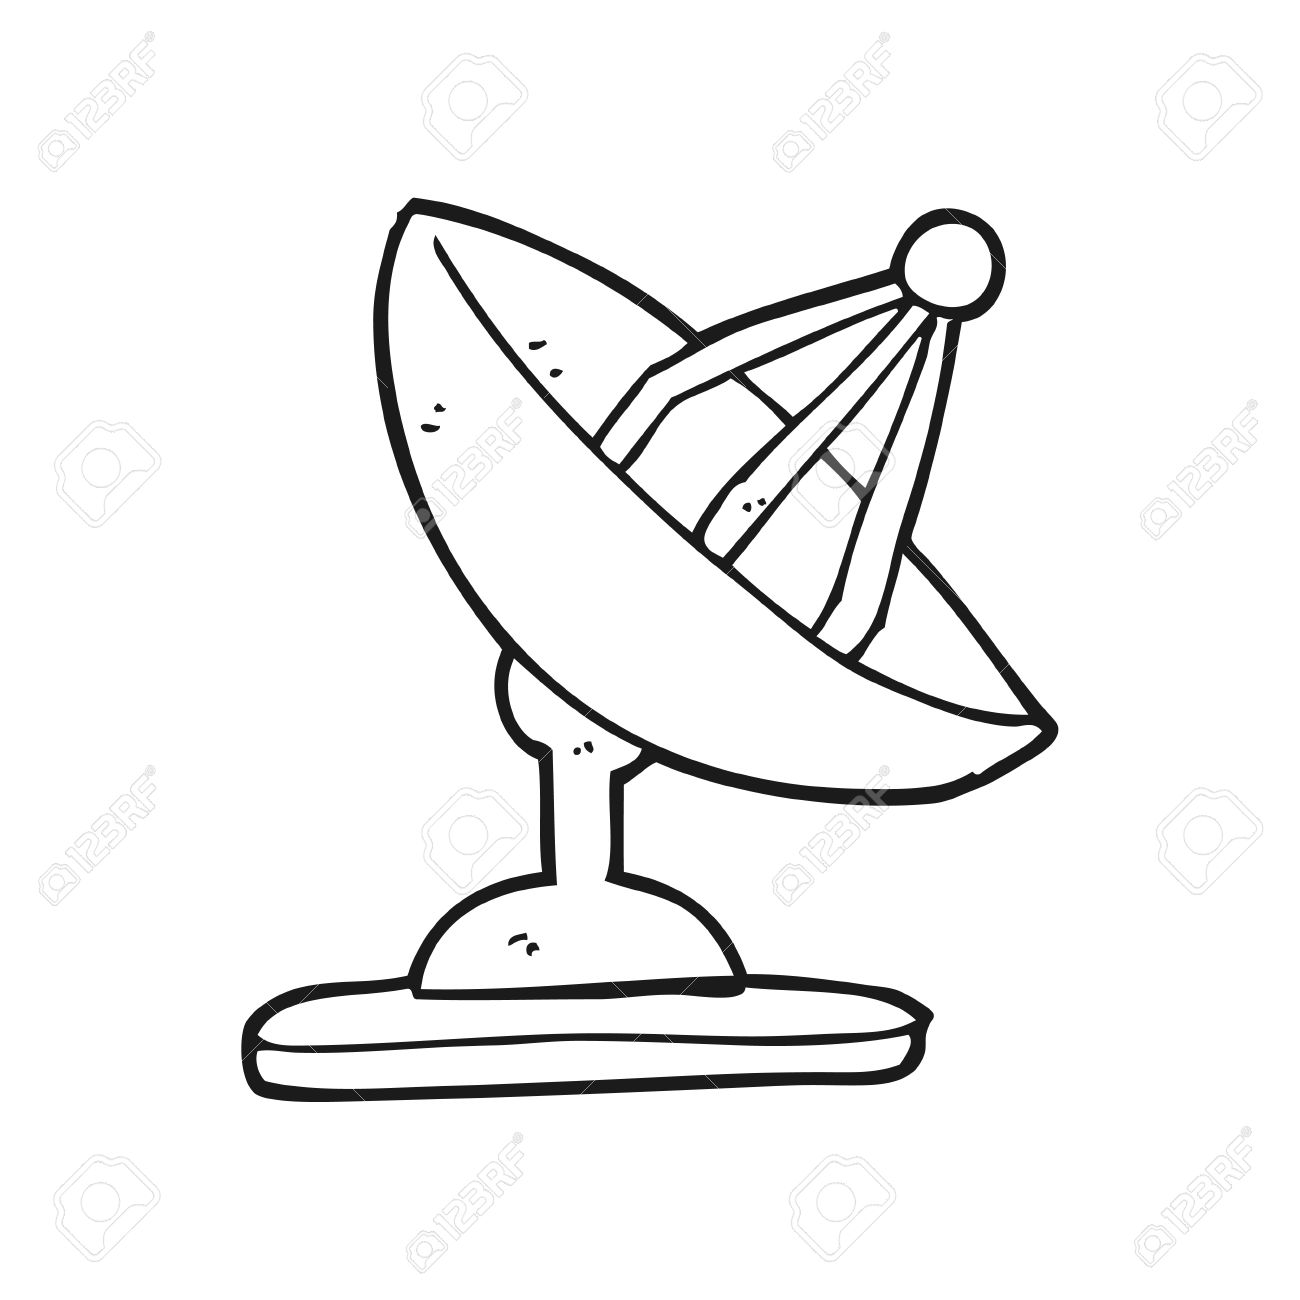 1300x1300 Freehand Drawn Black And White Cartoon Satellite Dish Royalty Free